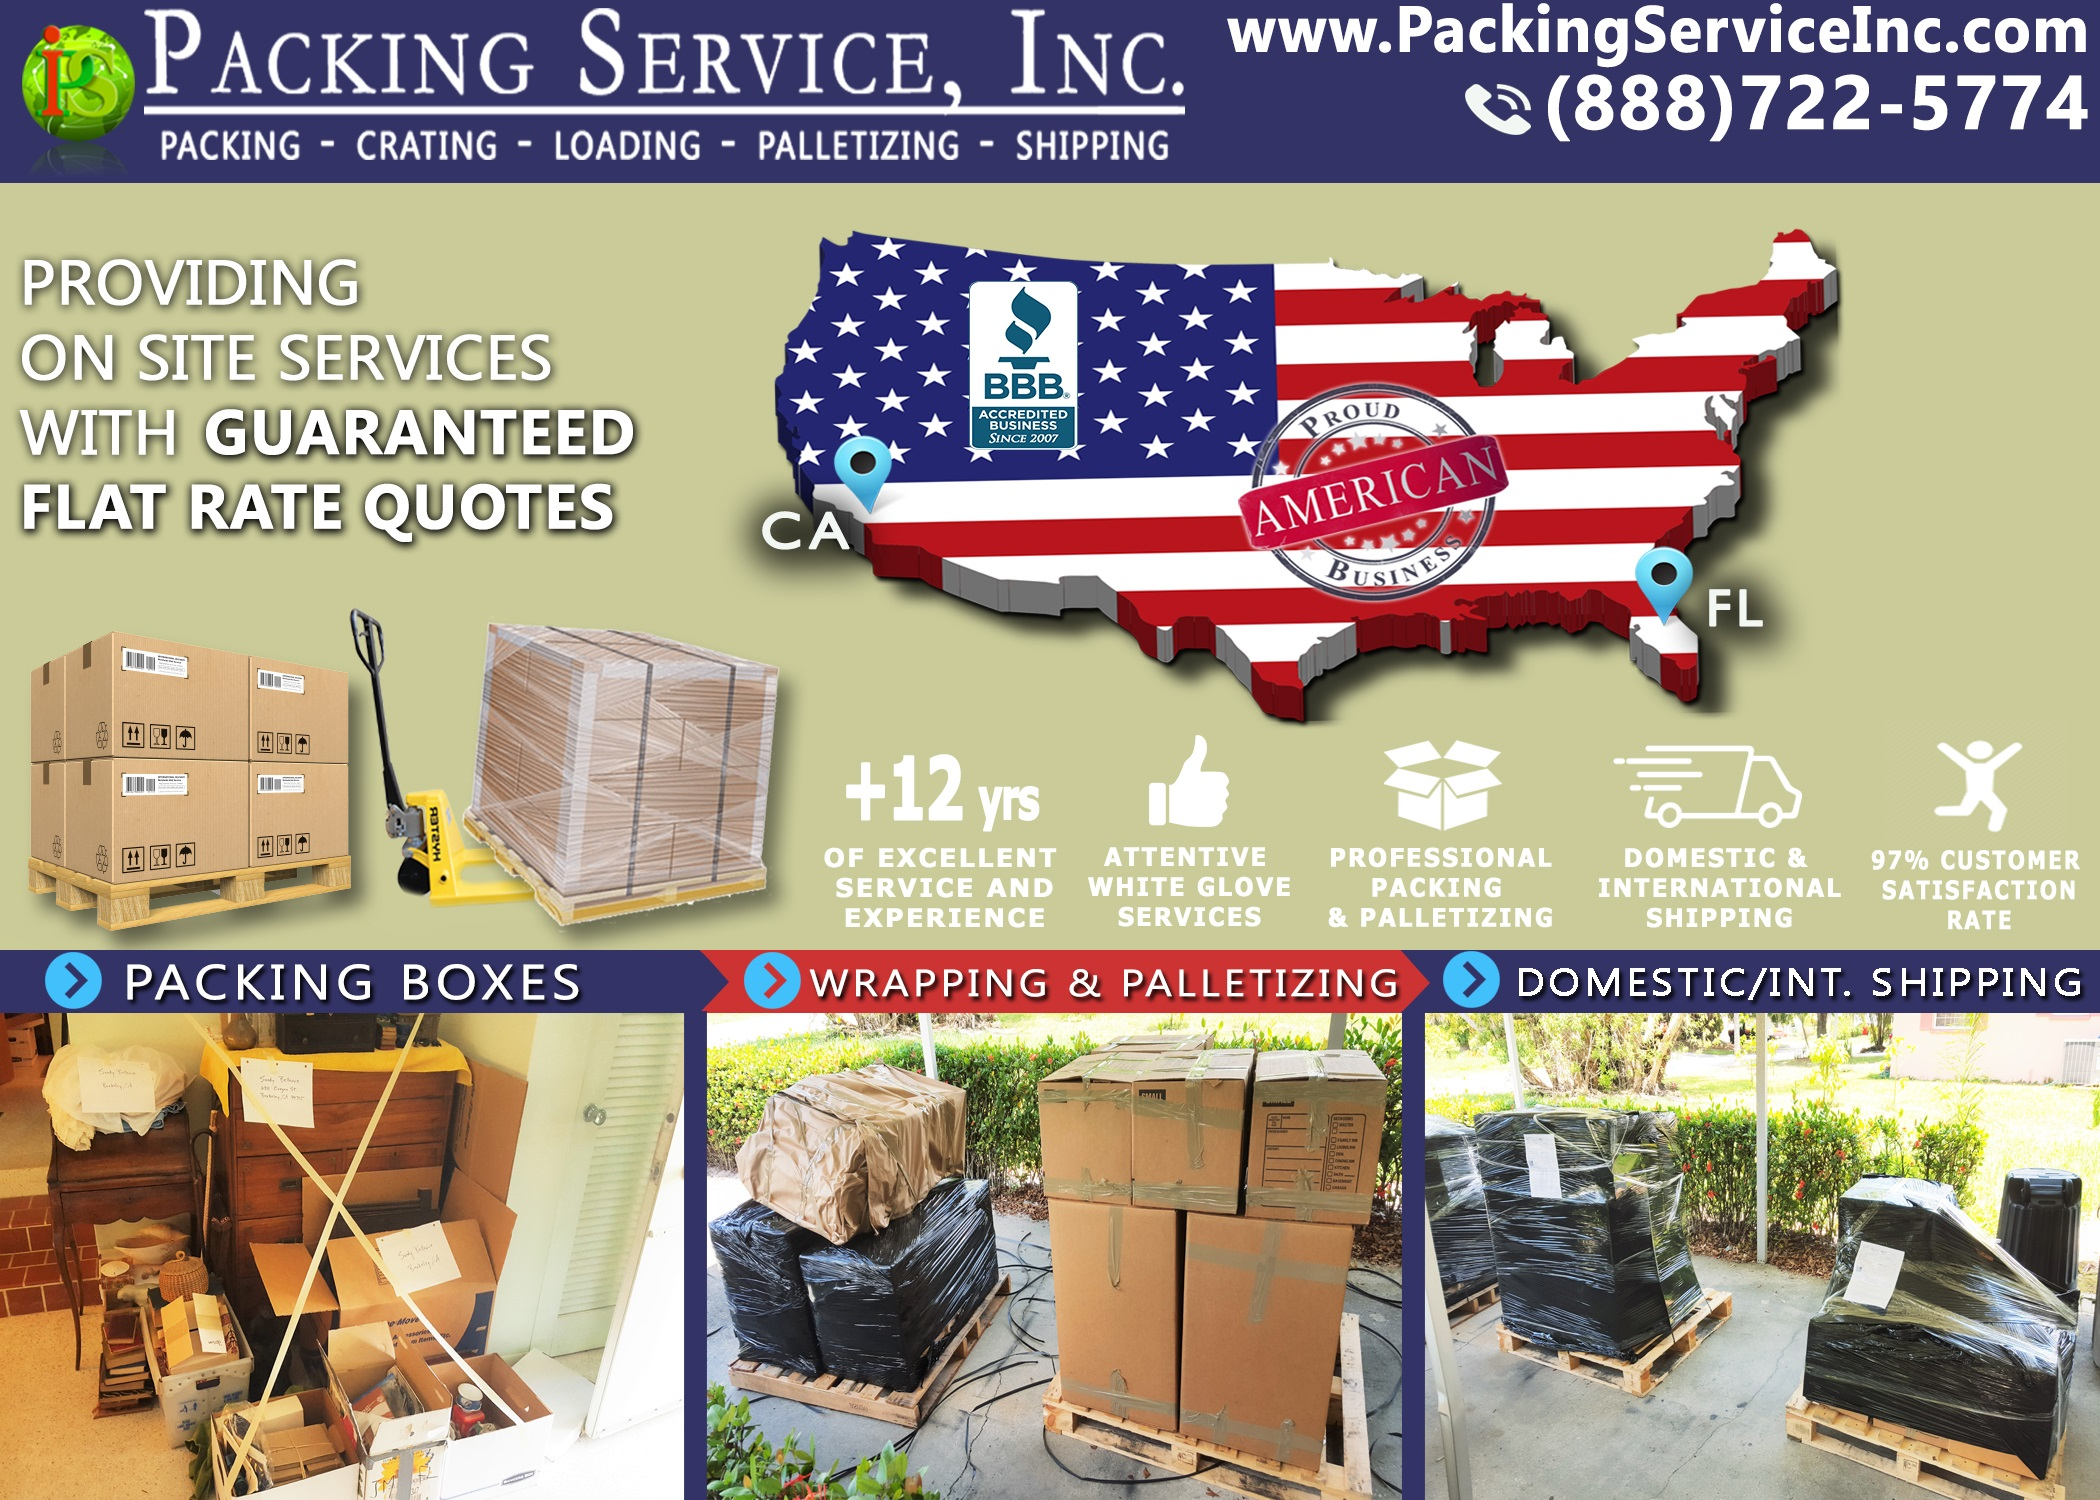 Packing Boxes, Palletizing and Shipping from Florida to California with Packing Service, Inc. - 221